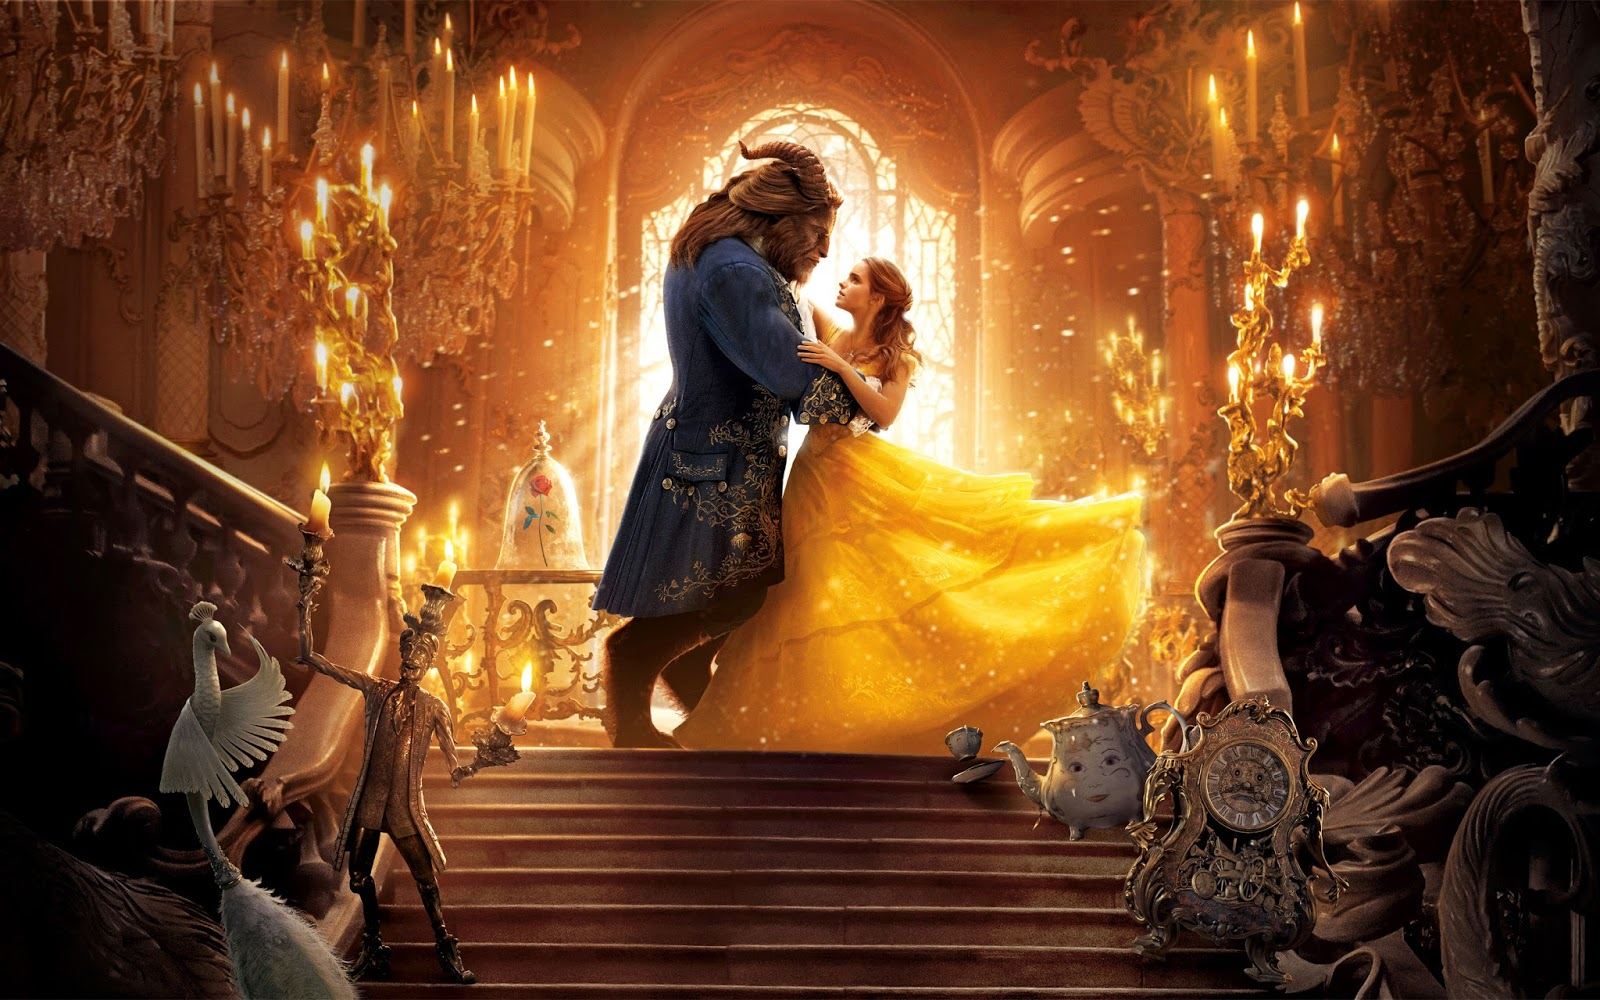 15 beauty and the beast quotes for mindfulness kerry louise norris 10 were together now everythings going to be fine belle voltagebd Image collections